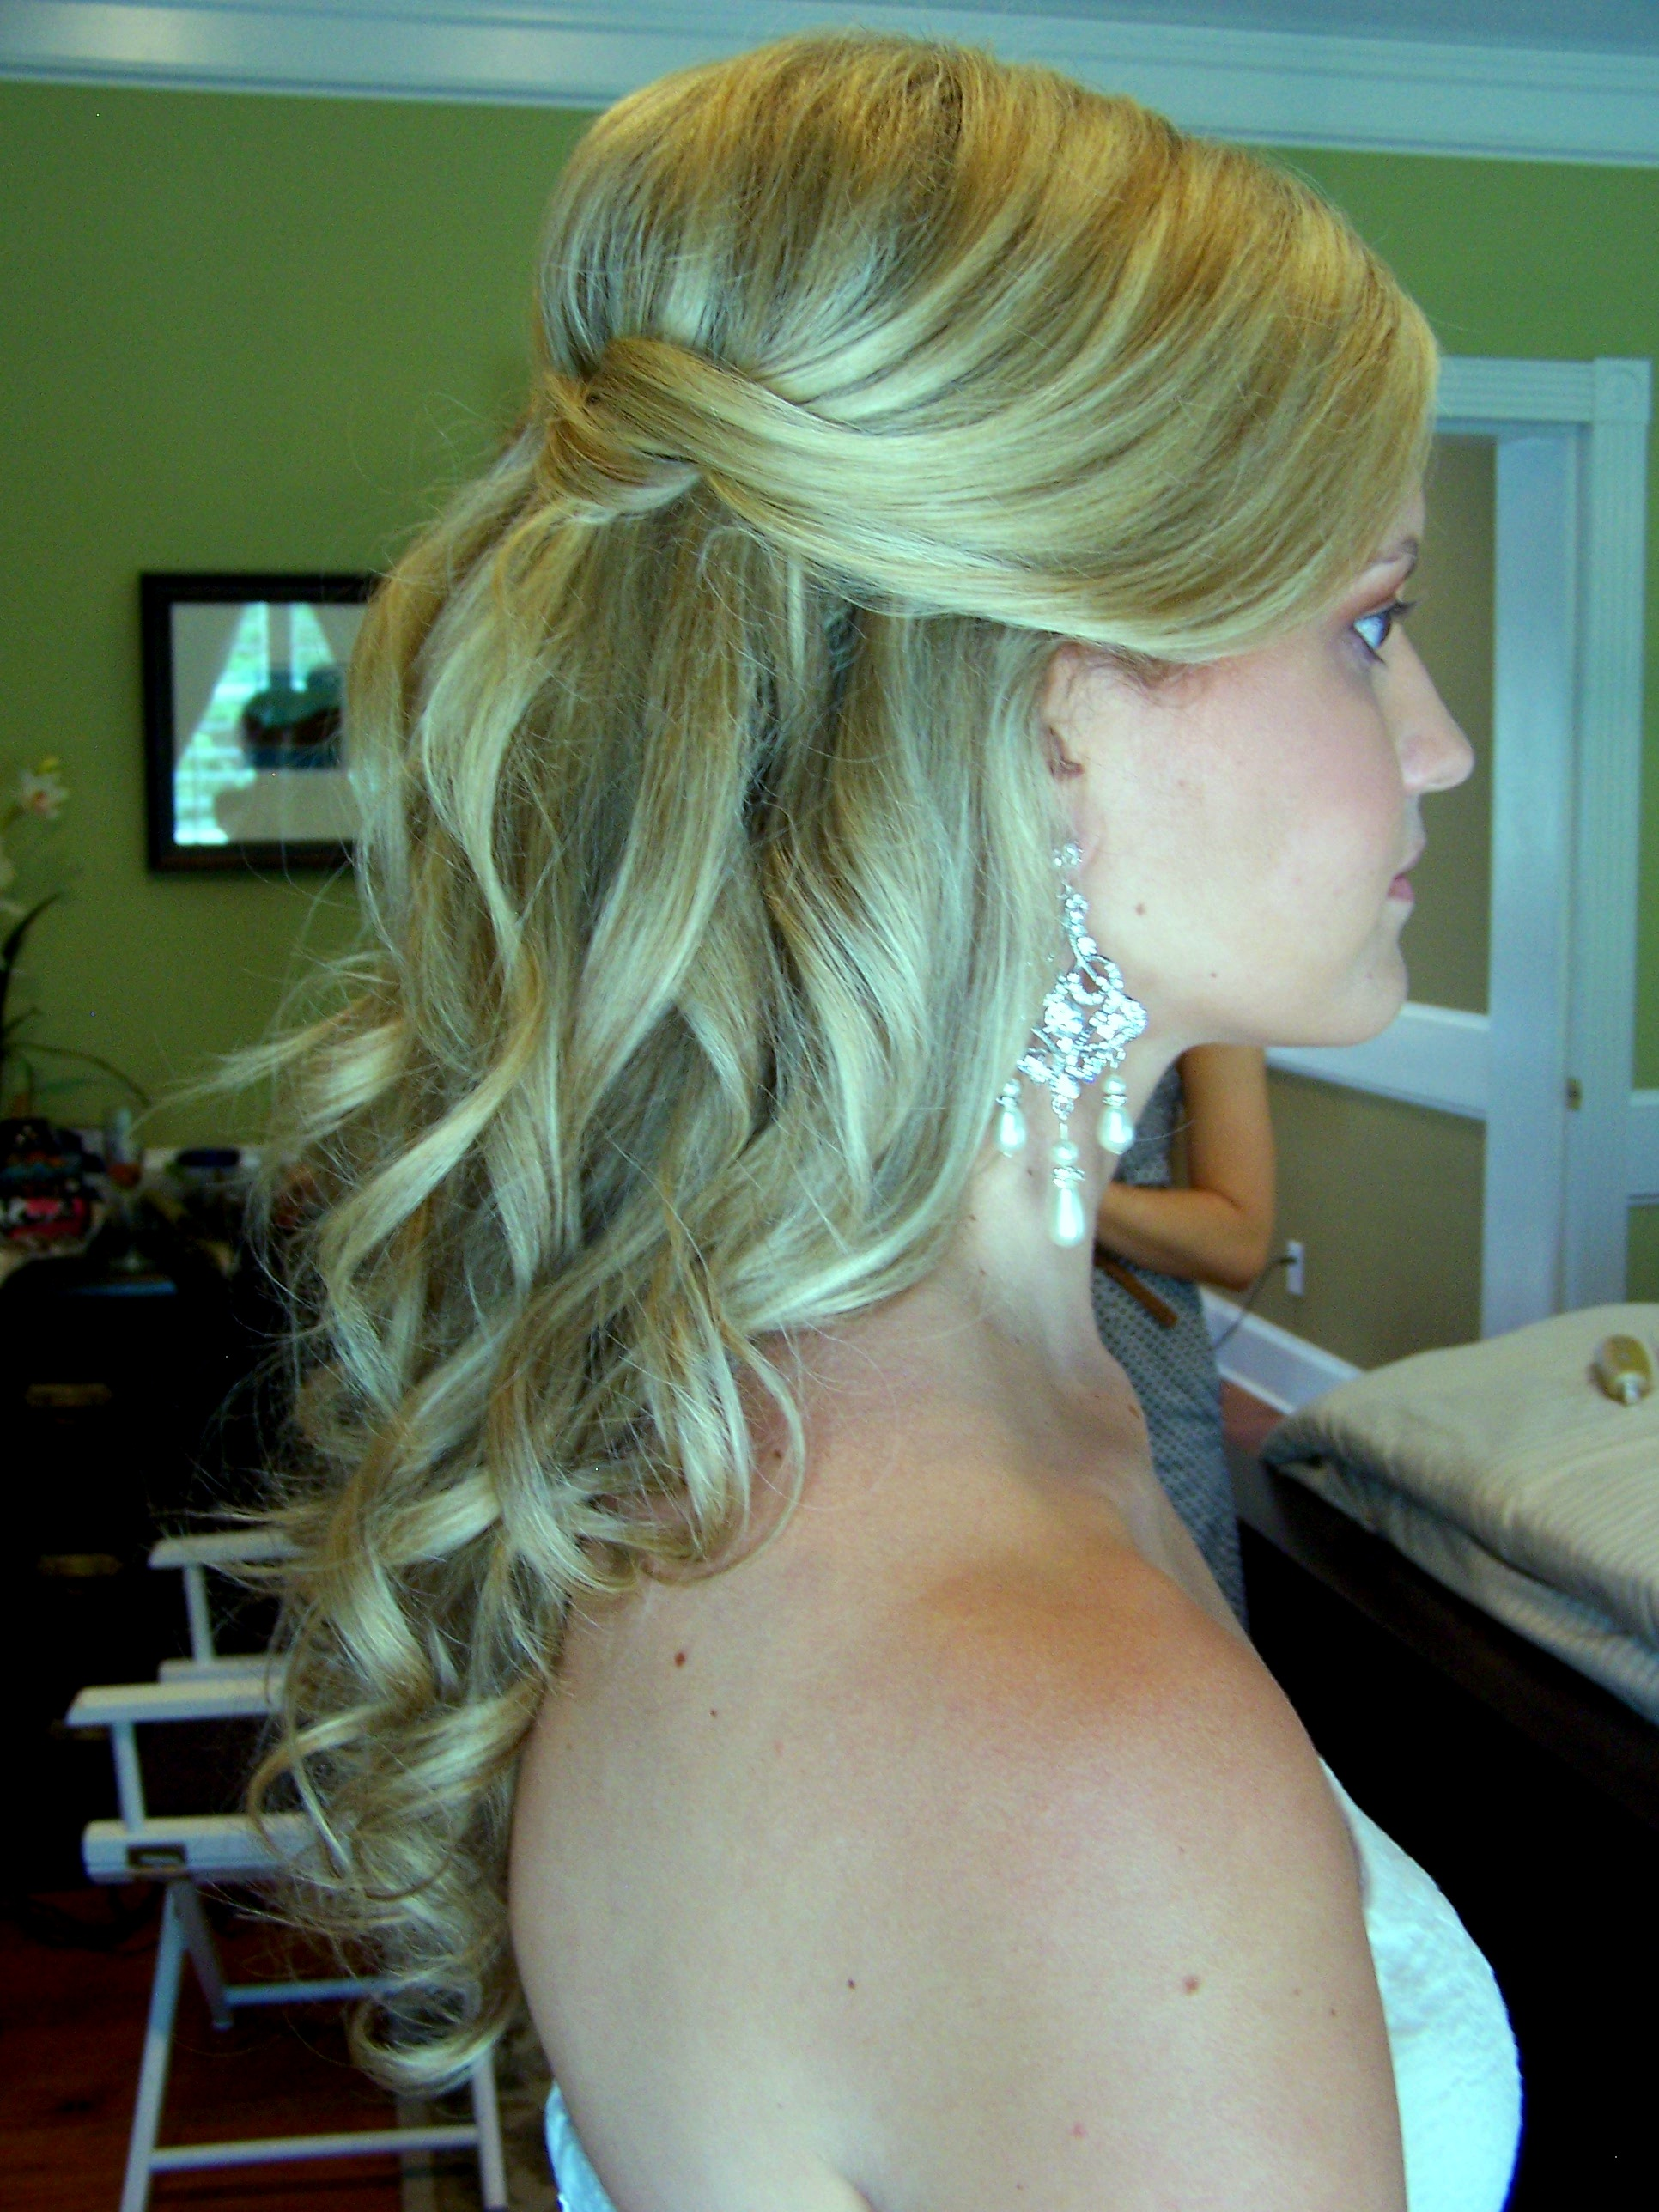 Tags: down hair style , half up weddin hair style , wedding hairstyle